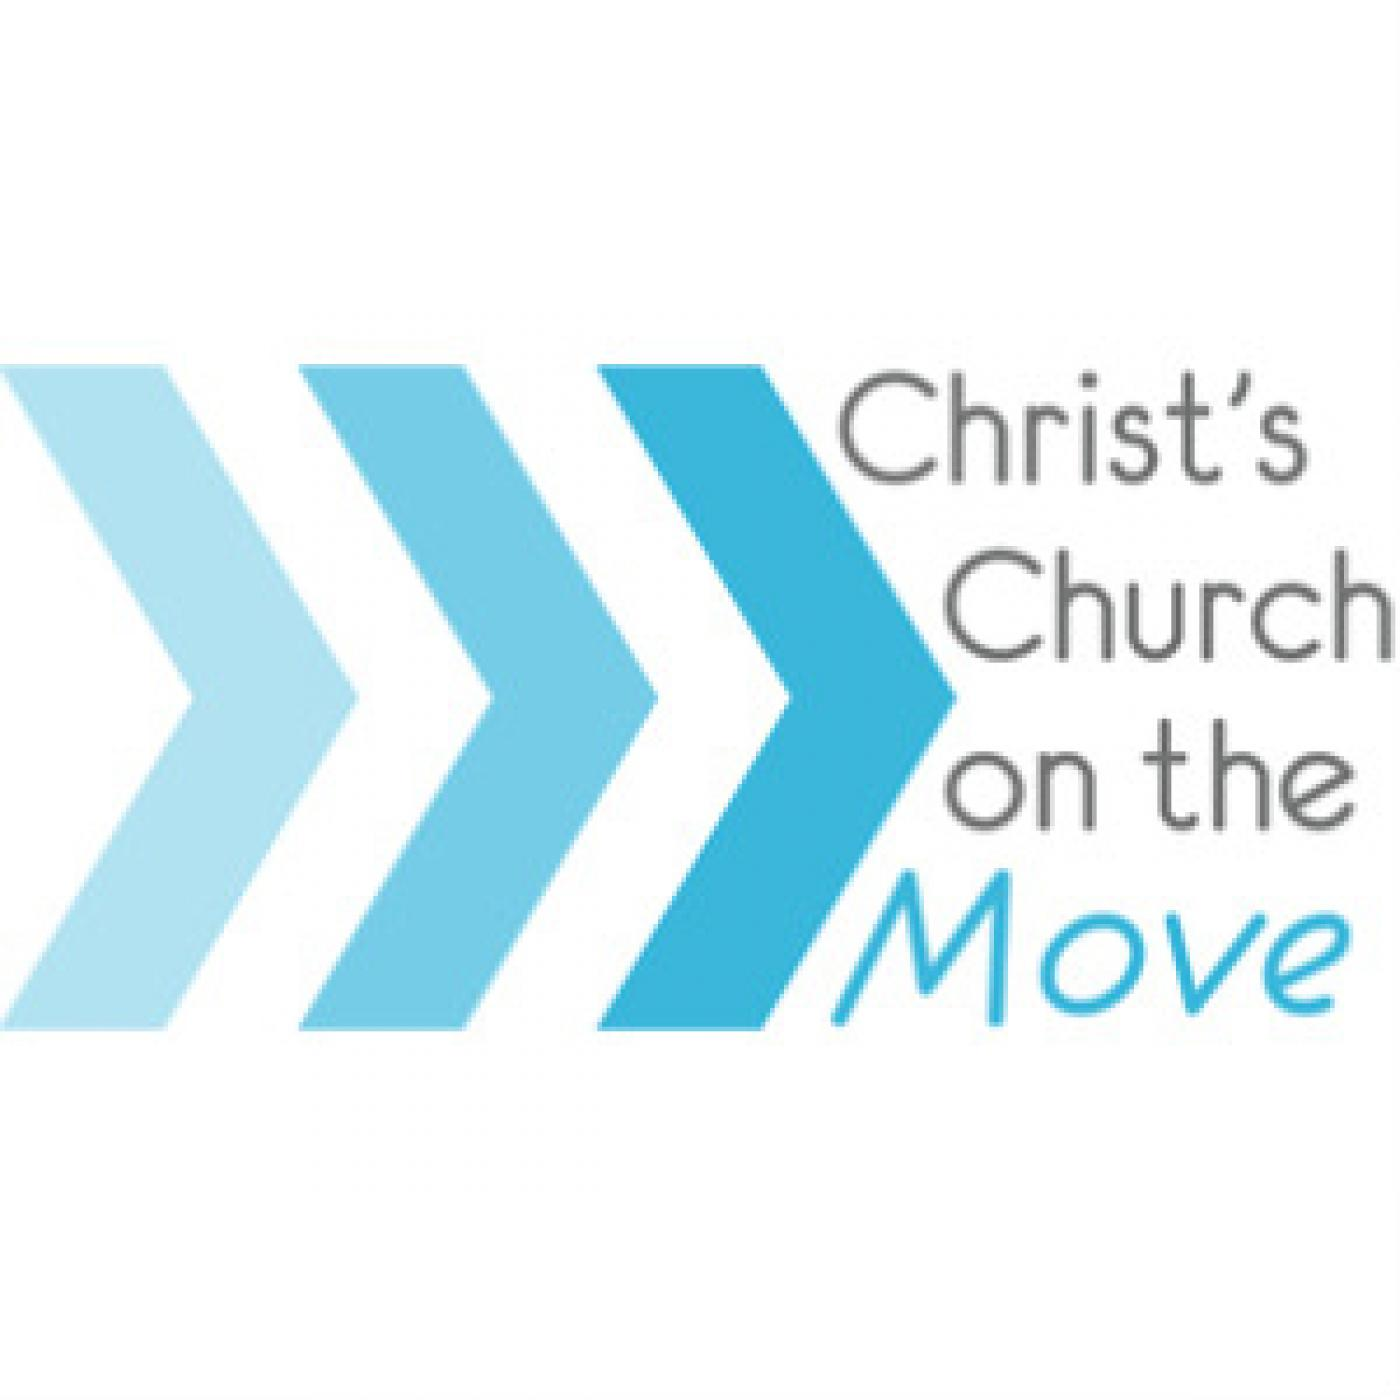 Christ's Church on the Move